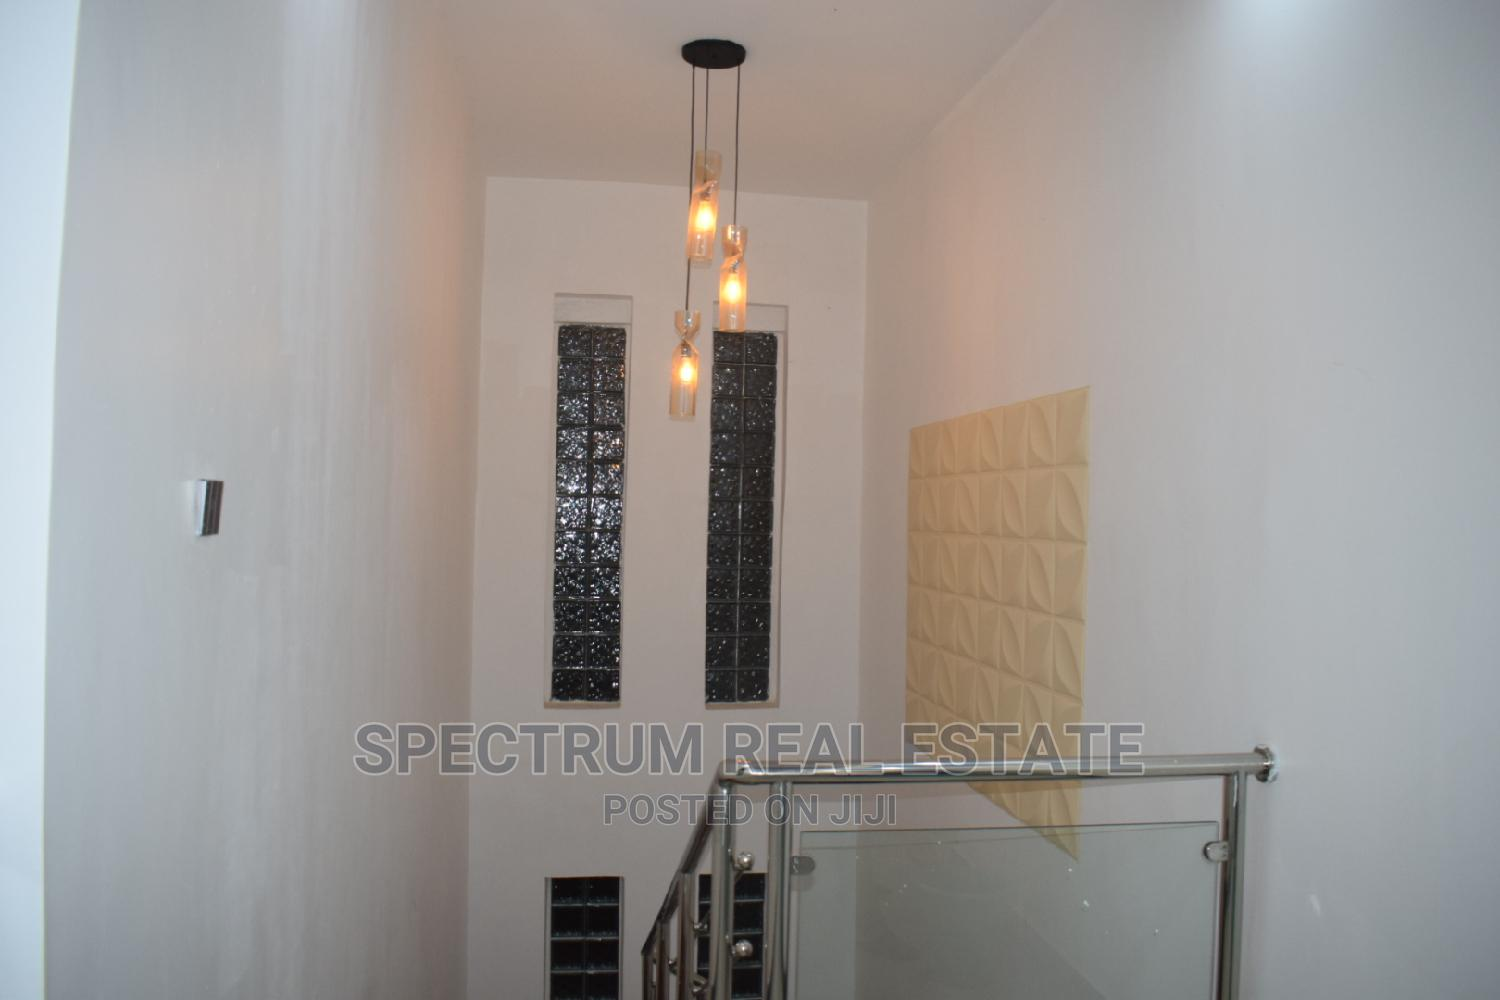 4bdrm House in Spectrum Real Estate, Kampala for Sale